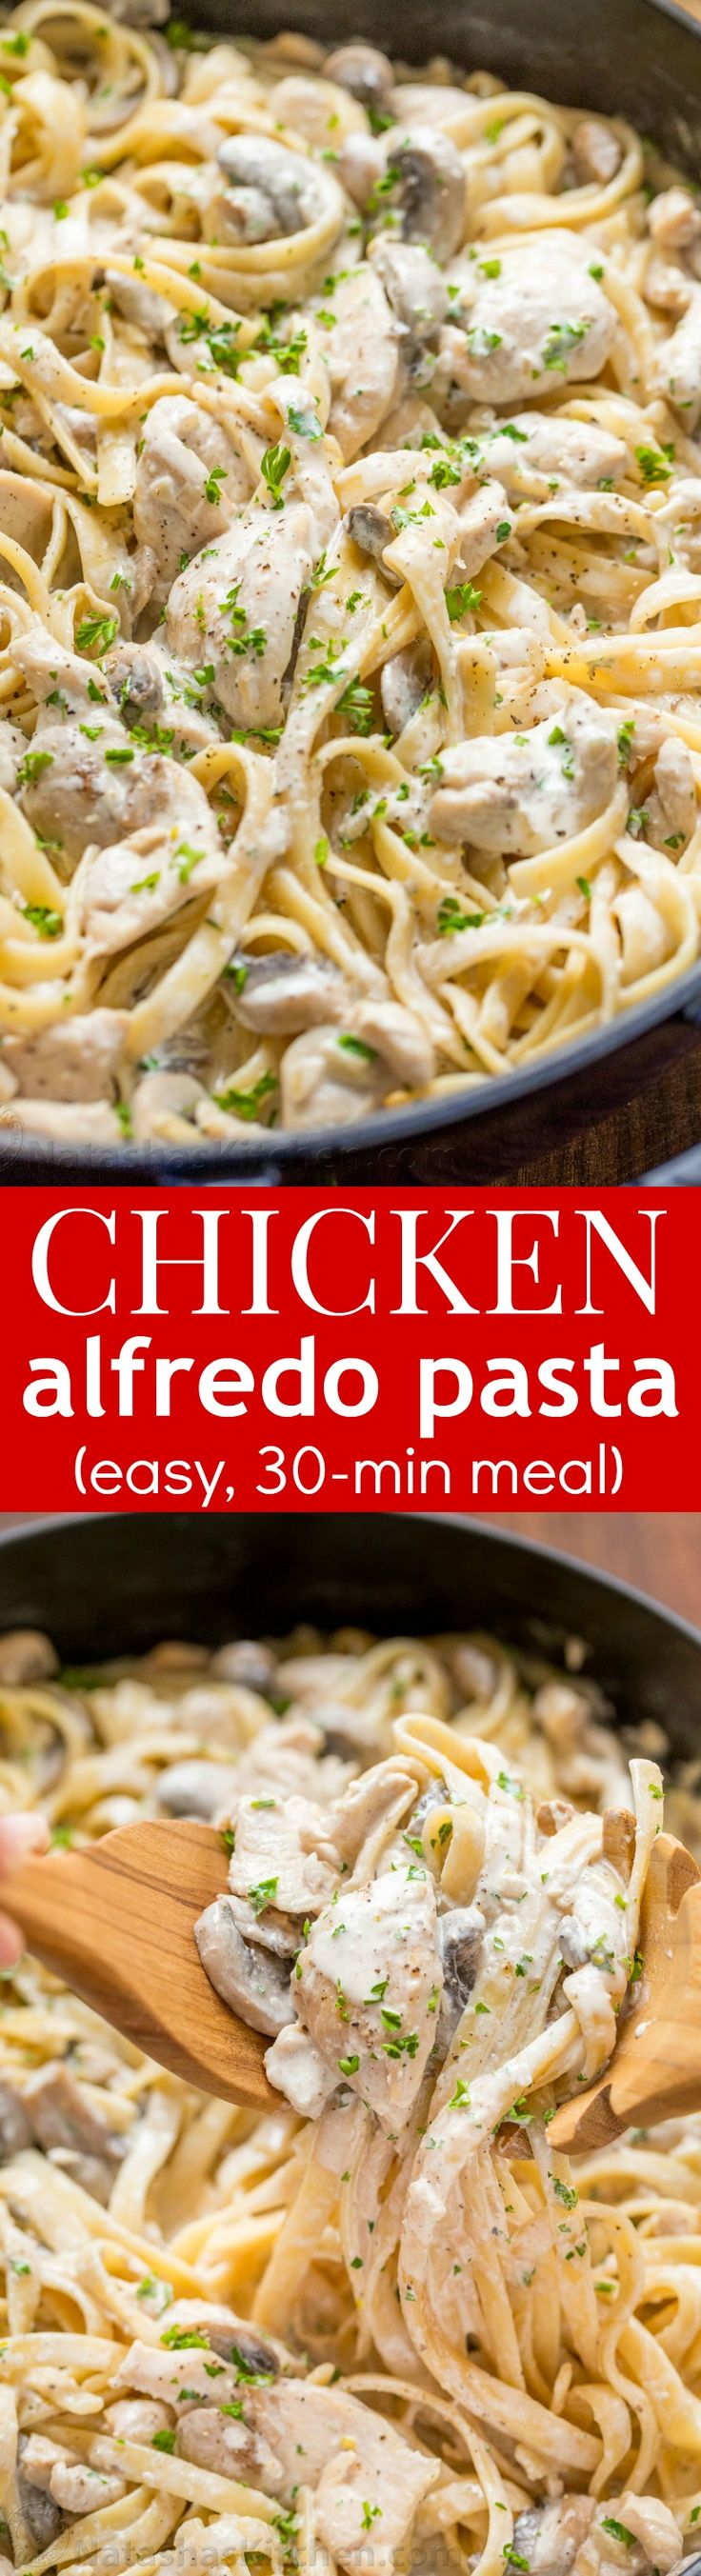 Slow Cooker: Mom's Chicken Fettuccine Alfredo - Natasha's Kitch...